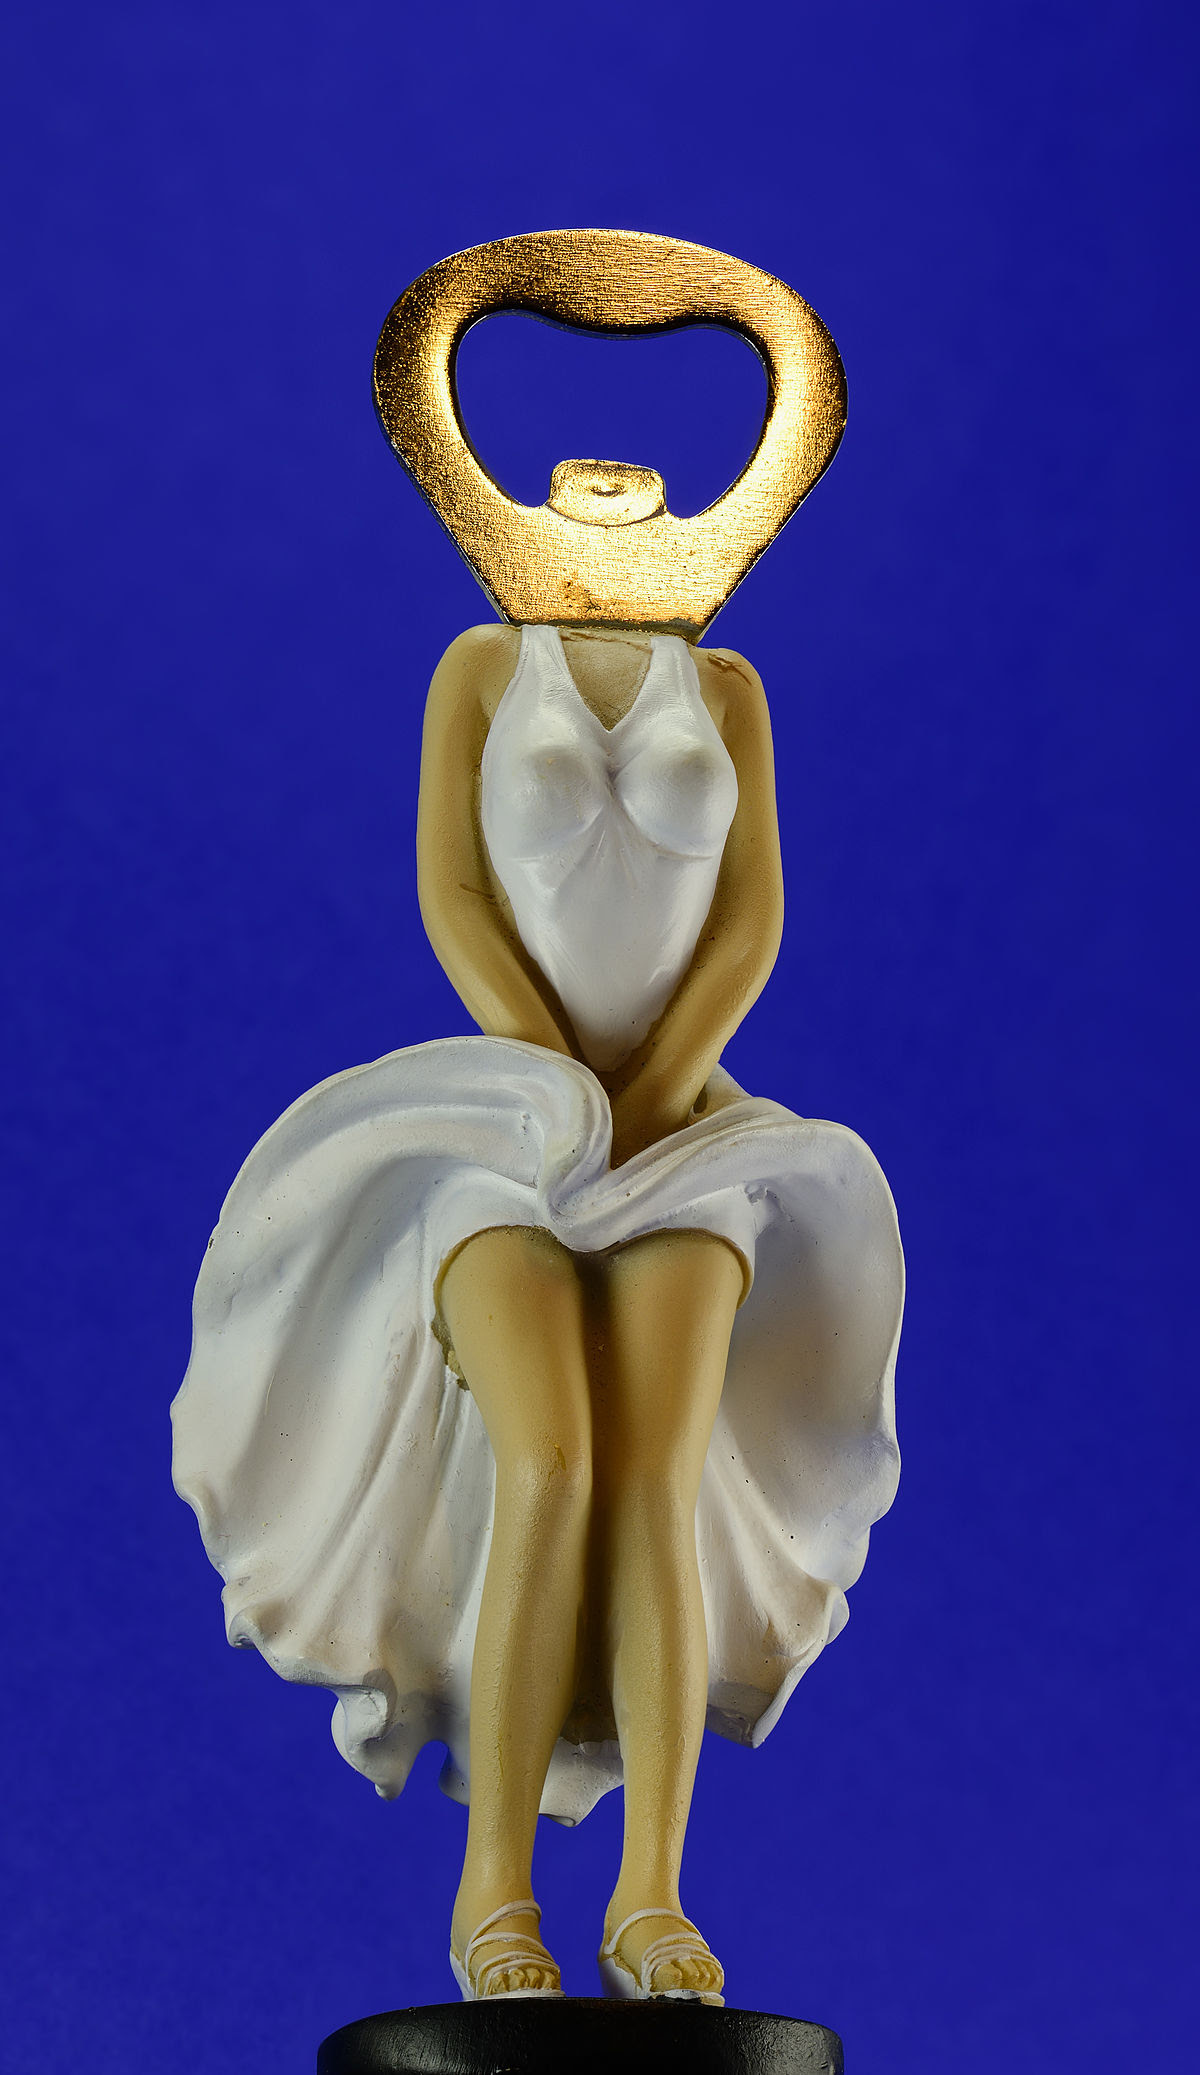 Marilyn Monroe bottle opener 2.jpg